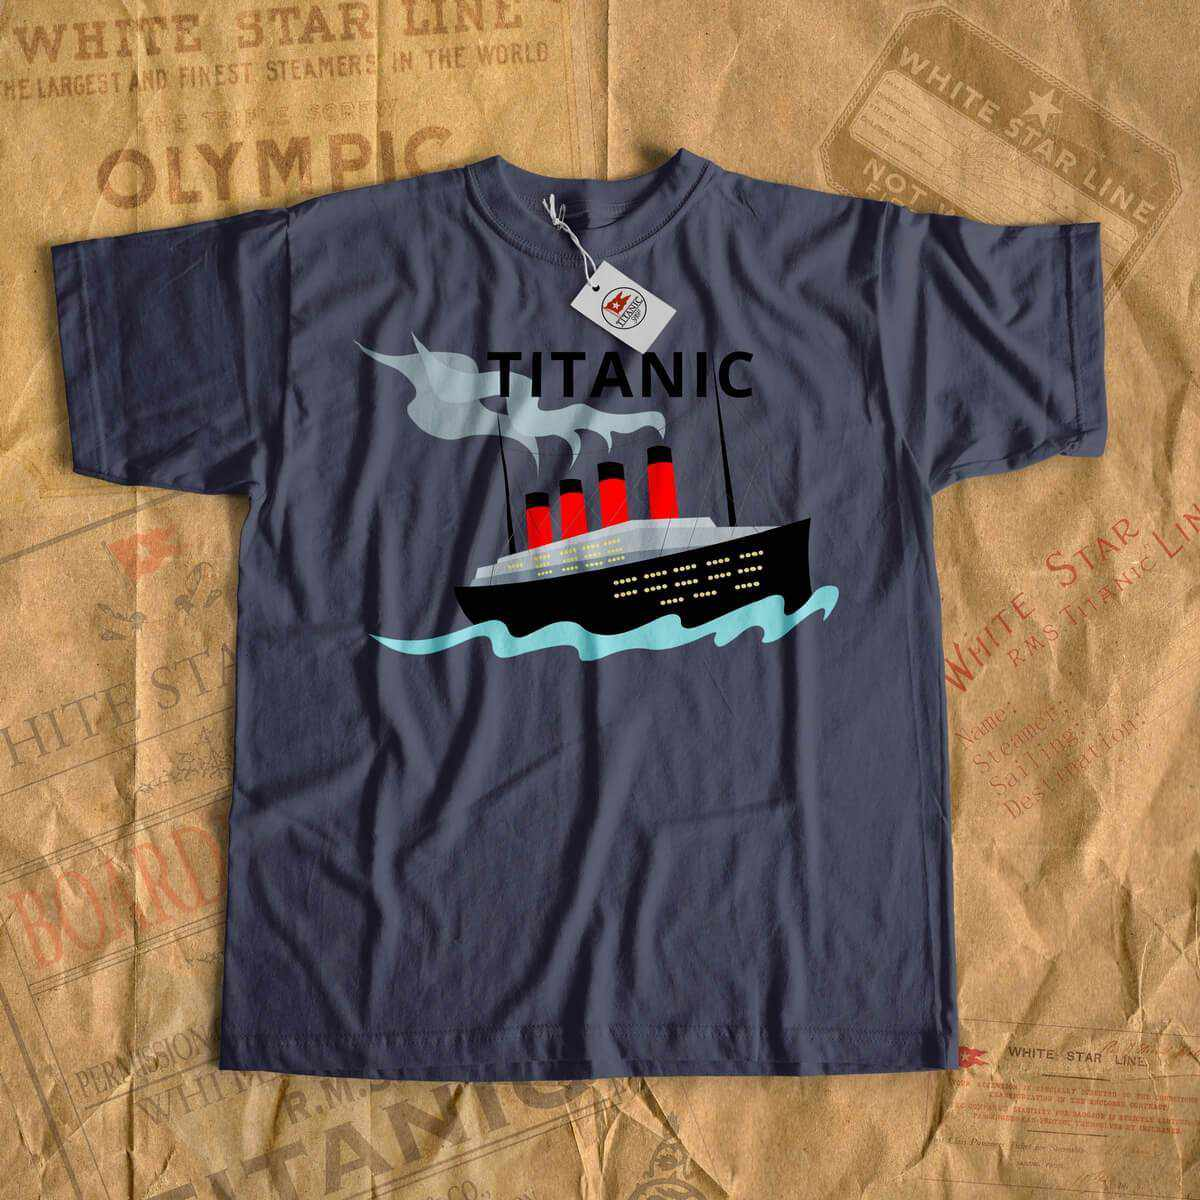 Kids Titanic shirt, boys cruise tshirt - vacation kids shirt, custom kids shirt. Gift for gift history buff - Titanic lover, Titanic fan-T-shirt new-Titanic shop-titanic-tee-shirt-tshirt-1912-Titanic shop